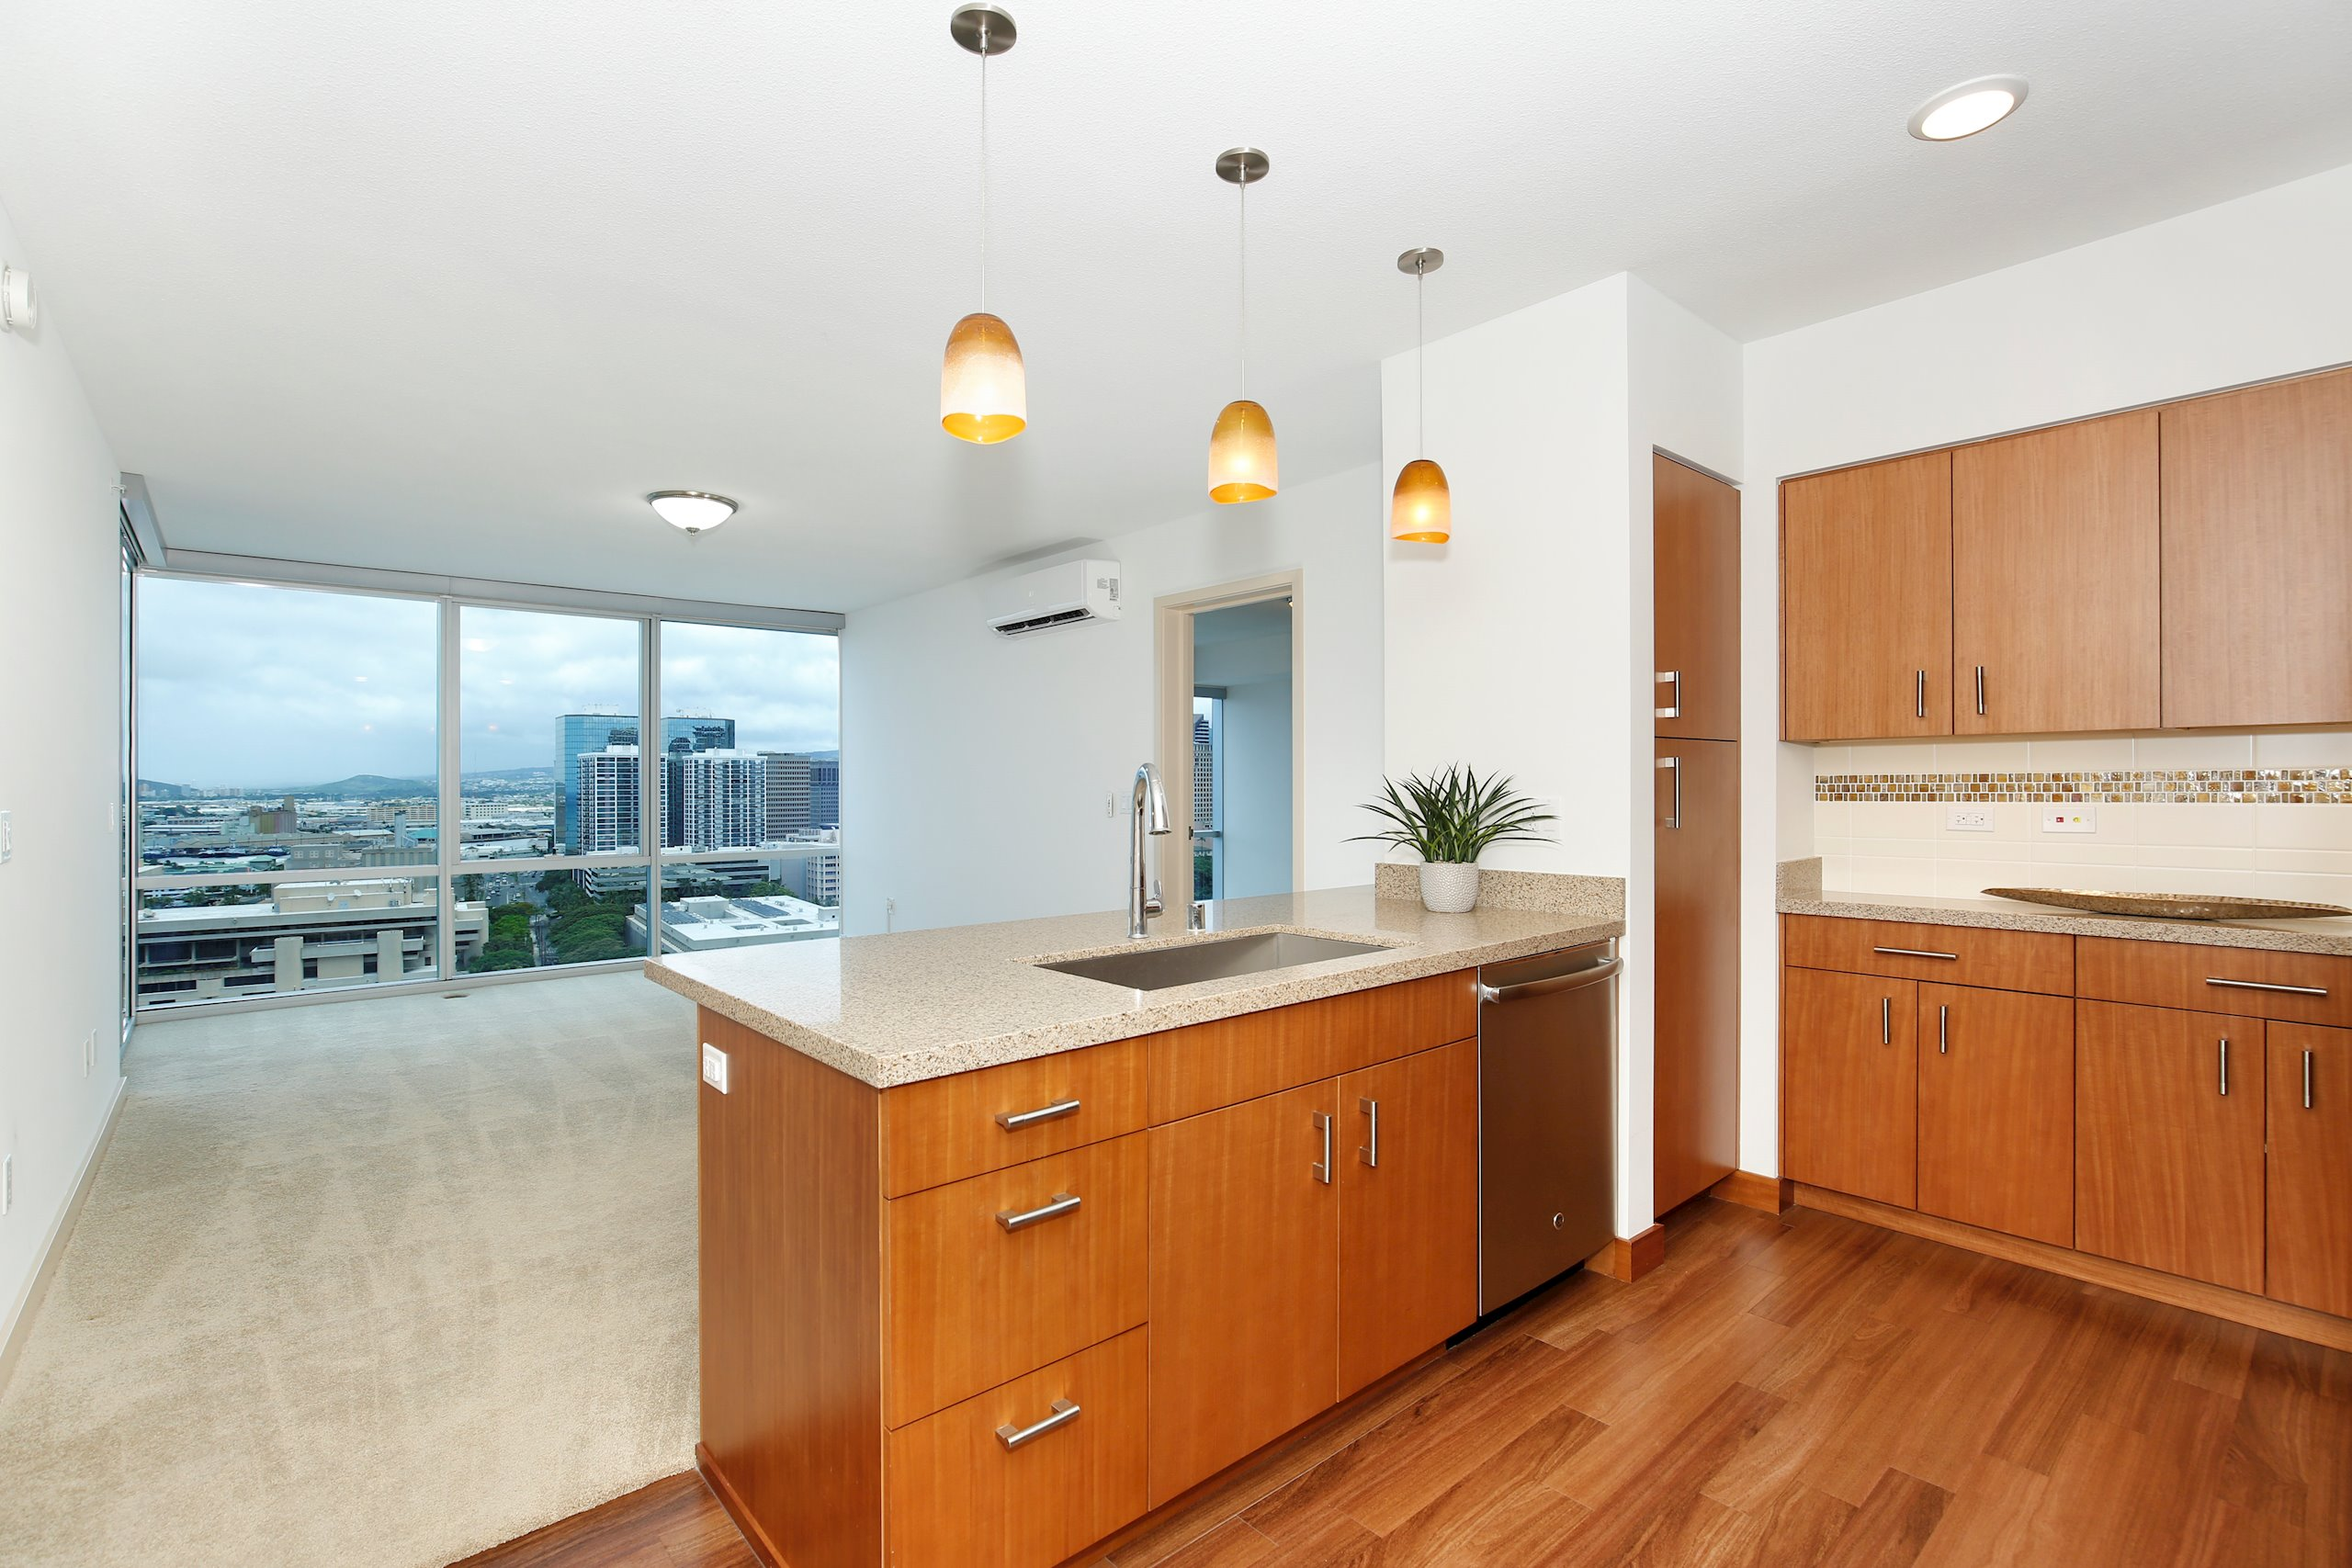 "You'll love the spacious feel of this large, preferred ""07"" stack condo with 999 square feet plus a 75 square foot lanai! Floor-to-ceiling double glazed insulated Low-E windows show off the open unobstructed views of Honolulu Harbor, the Downtown skyline as well as the ocean and mountains. The elegant contemporary design of the kitchen will impress you with quartz counter tops, stainless steel appliances and European style Anigre wood cabinets. Energy saving appliances, split AC units, individual water heaters and EV charging stations add up to energy savings. You'll love the electronic automated shades which also feature black out shades in bedrooms. The spacious recreation deck and well-equipped fitness center are on par with amenities you come to expect in a luxury high-rise condo built today."